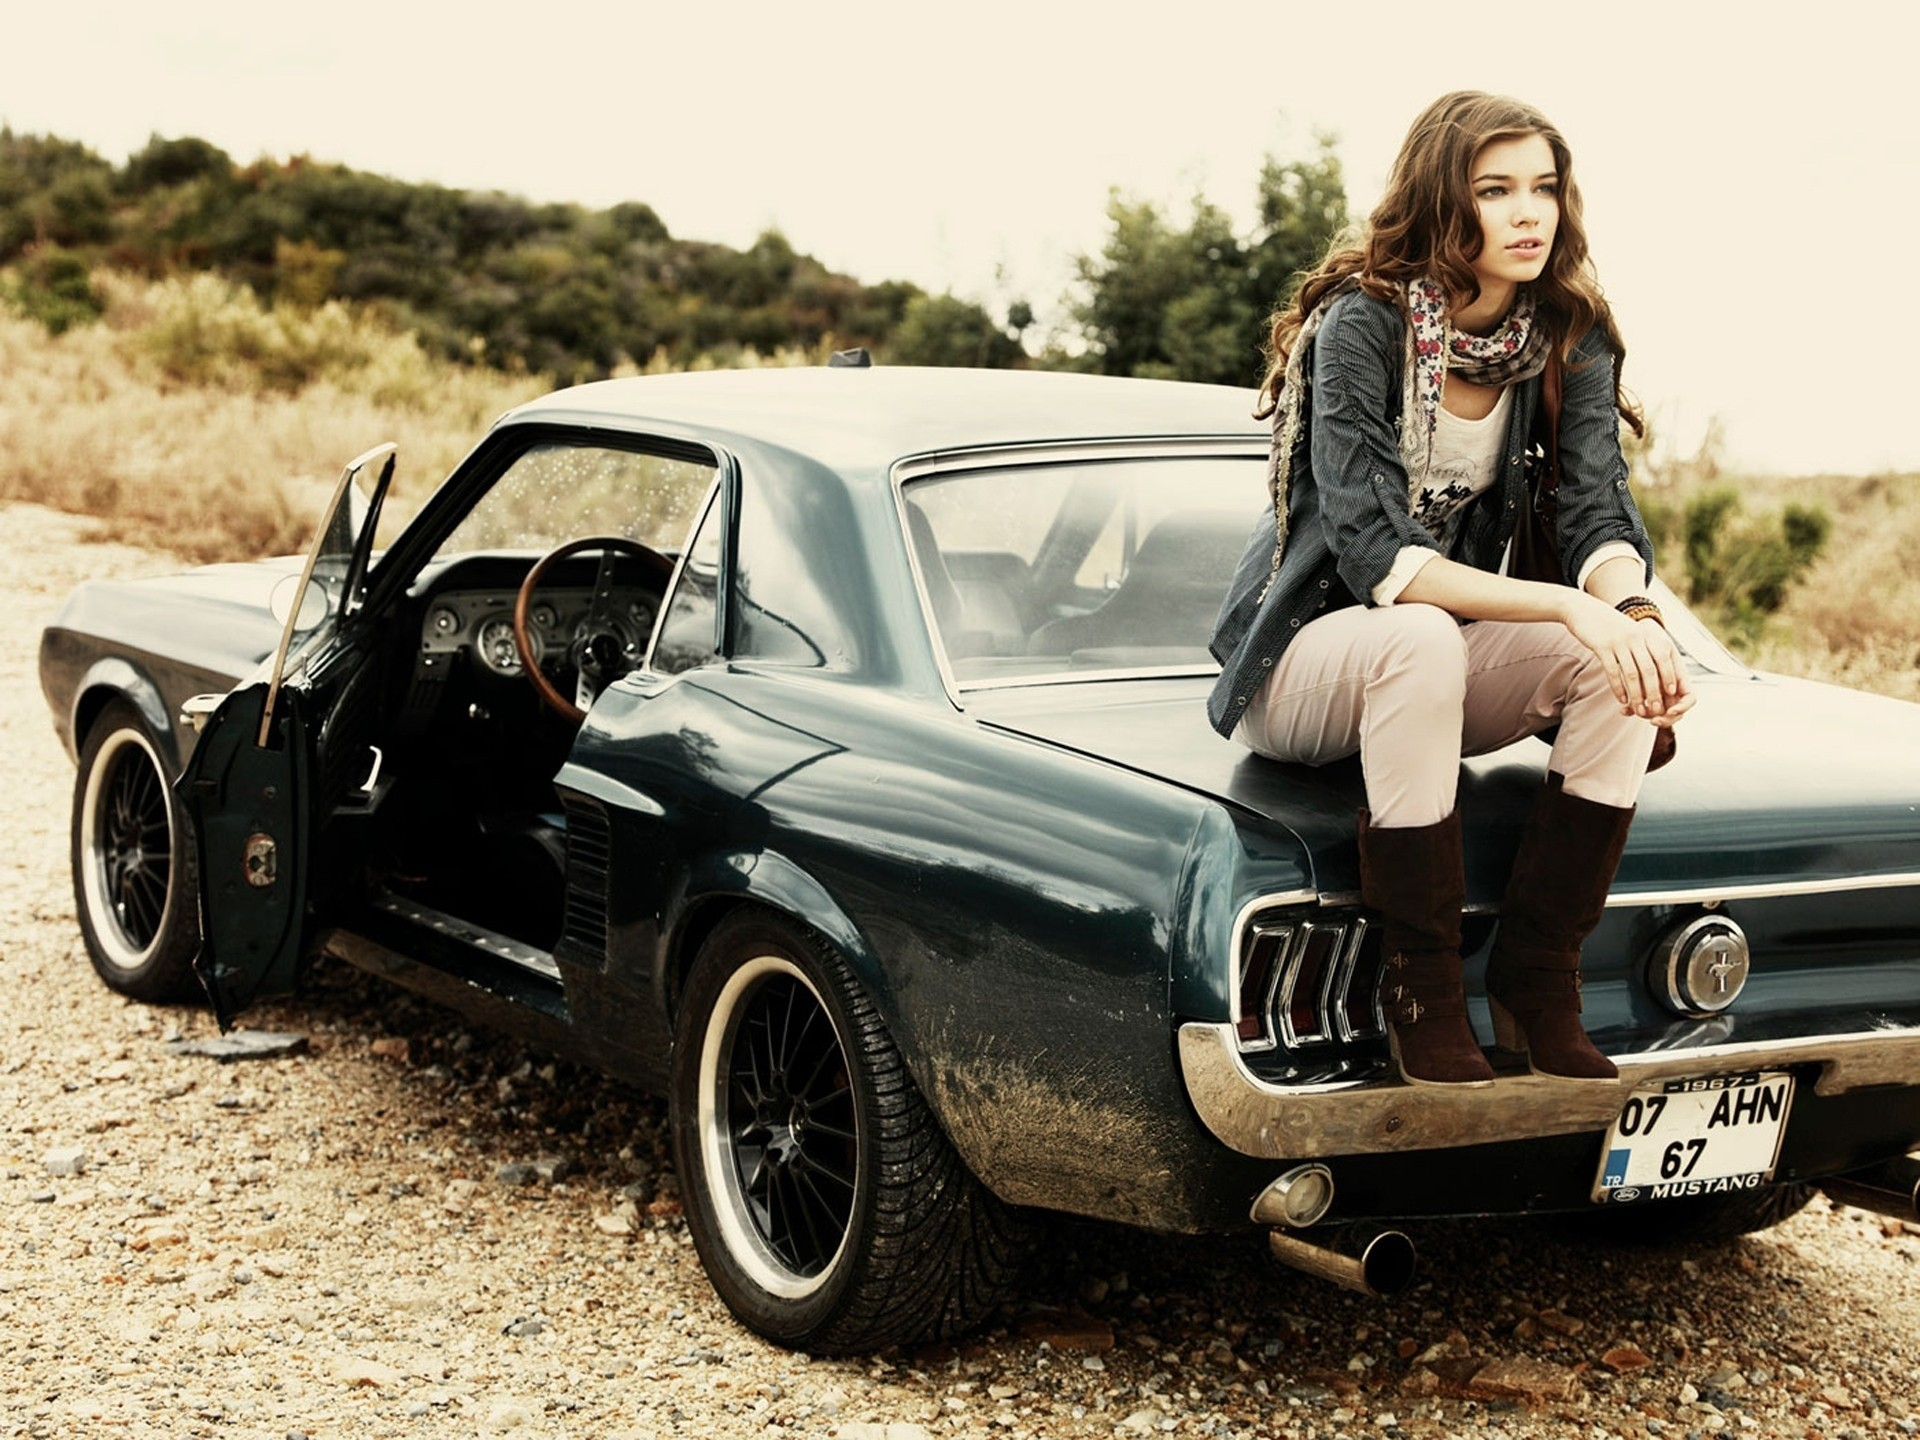 Girls And Muscle Cars Wallpaper Backgrounds Photos Images Pictures Yl Computing